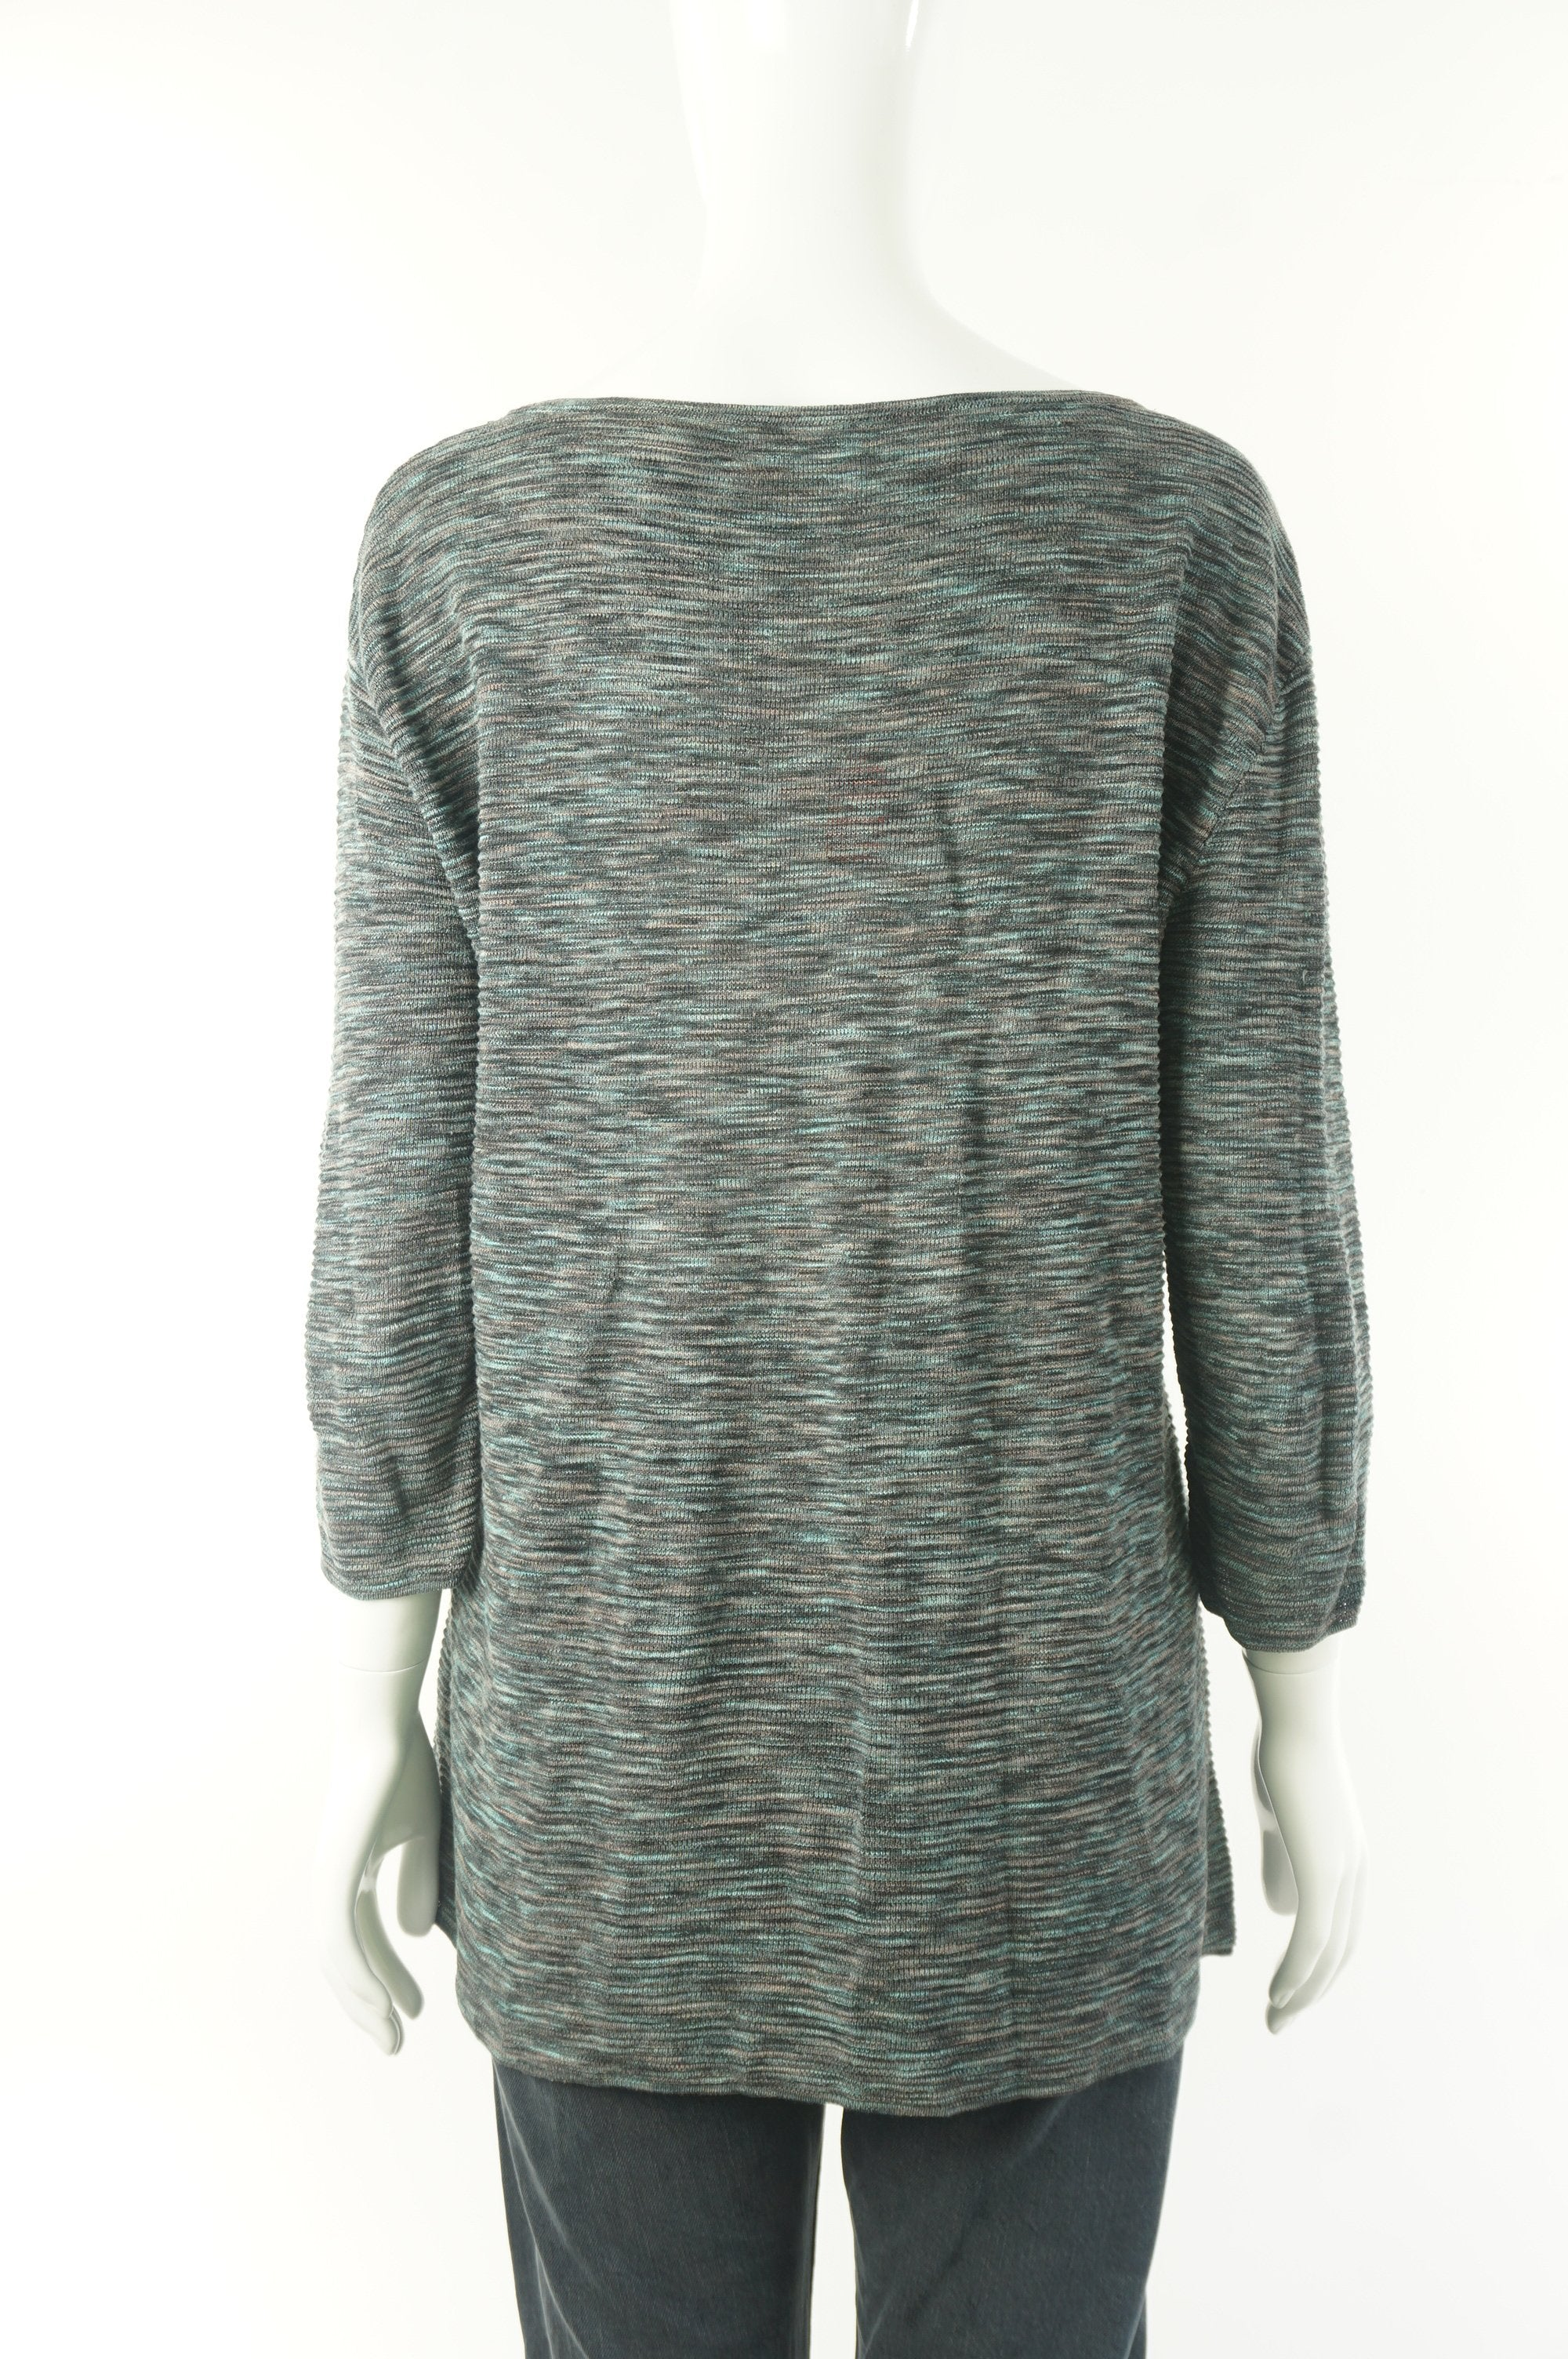 Wilfred Pullover Sweater, Relazed fit with dropped shoulder. Perfect for everyday wear., Grey, Green, 68% viscose, 28% linen, 12% Nylon, women's Tops, women's Grey, Green Tops, Wilfred women's Tops, wilfred loose sweater, arizia women's loose sweater, women's sweater, wilfred women's pullover